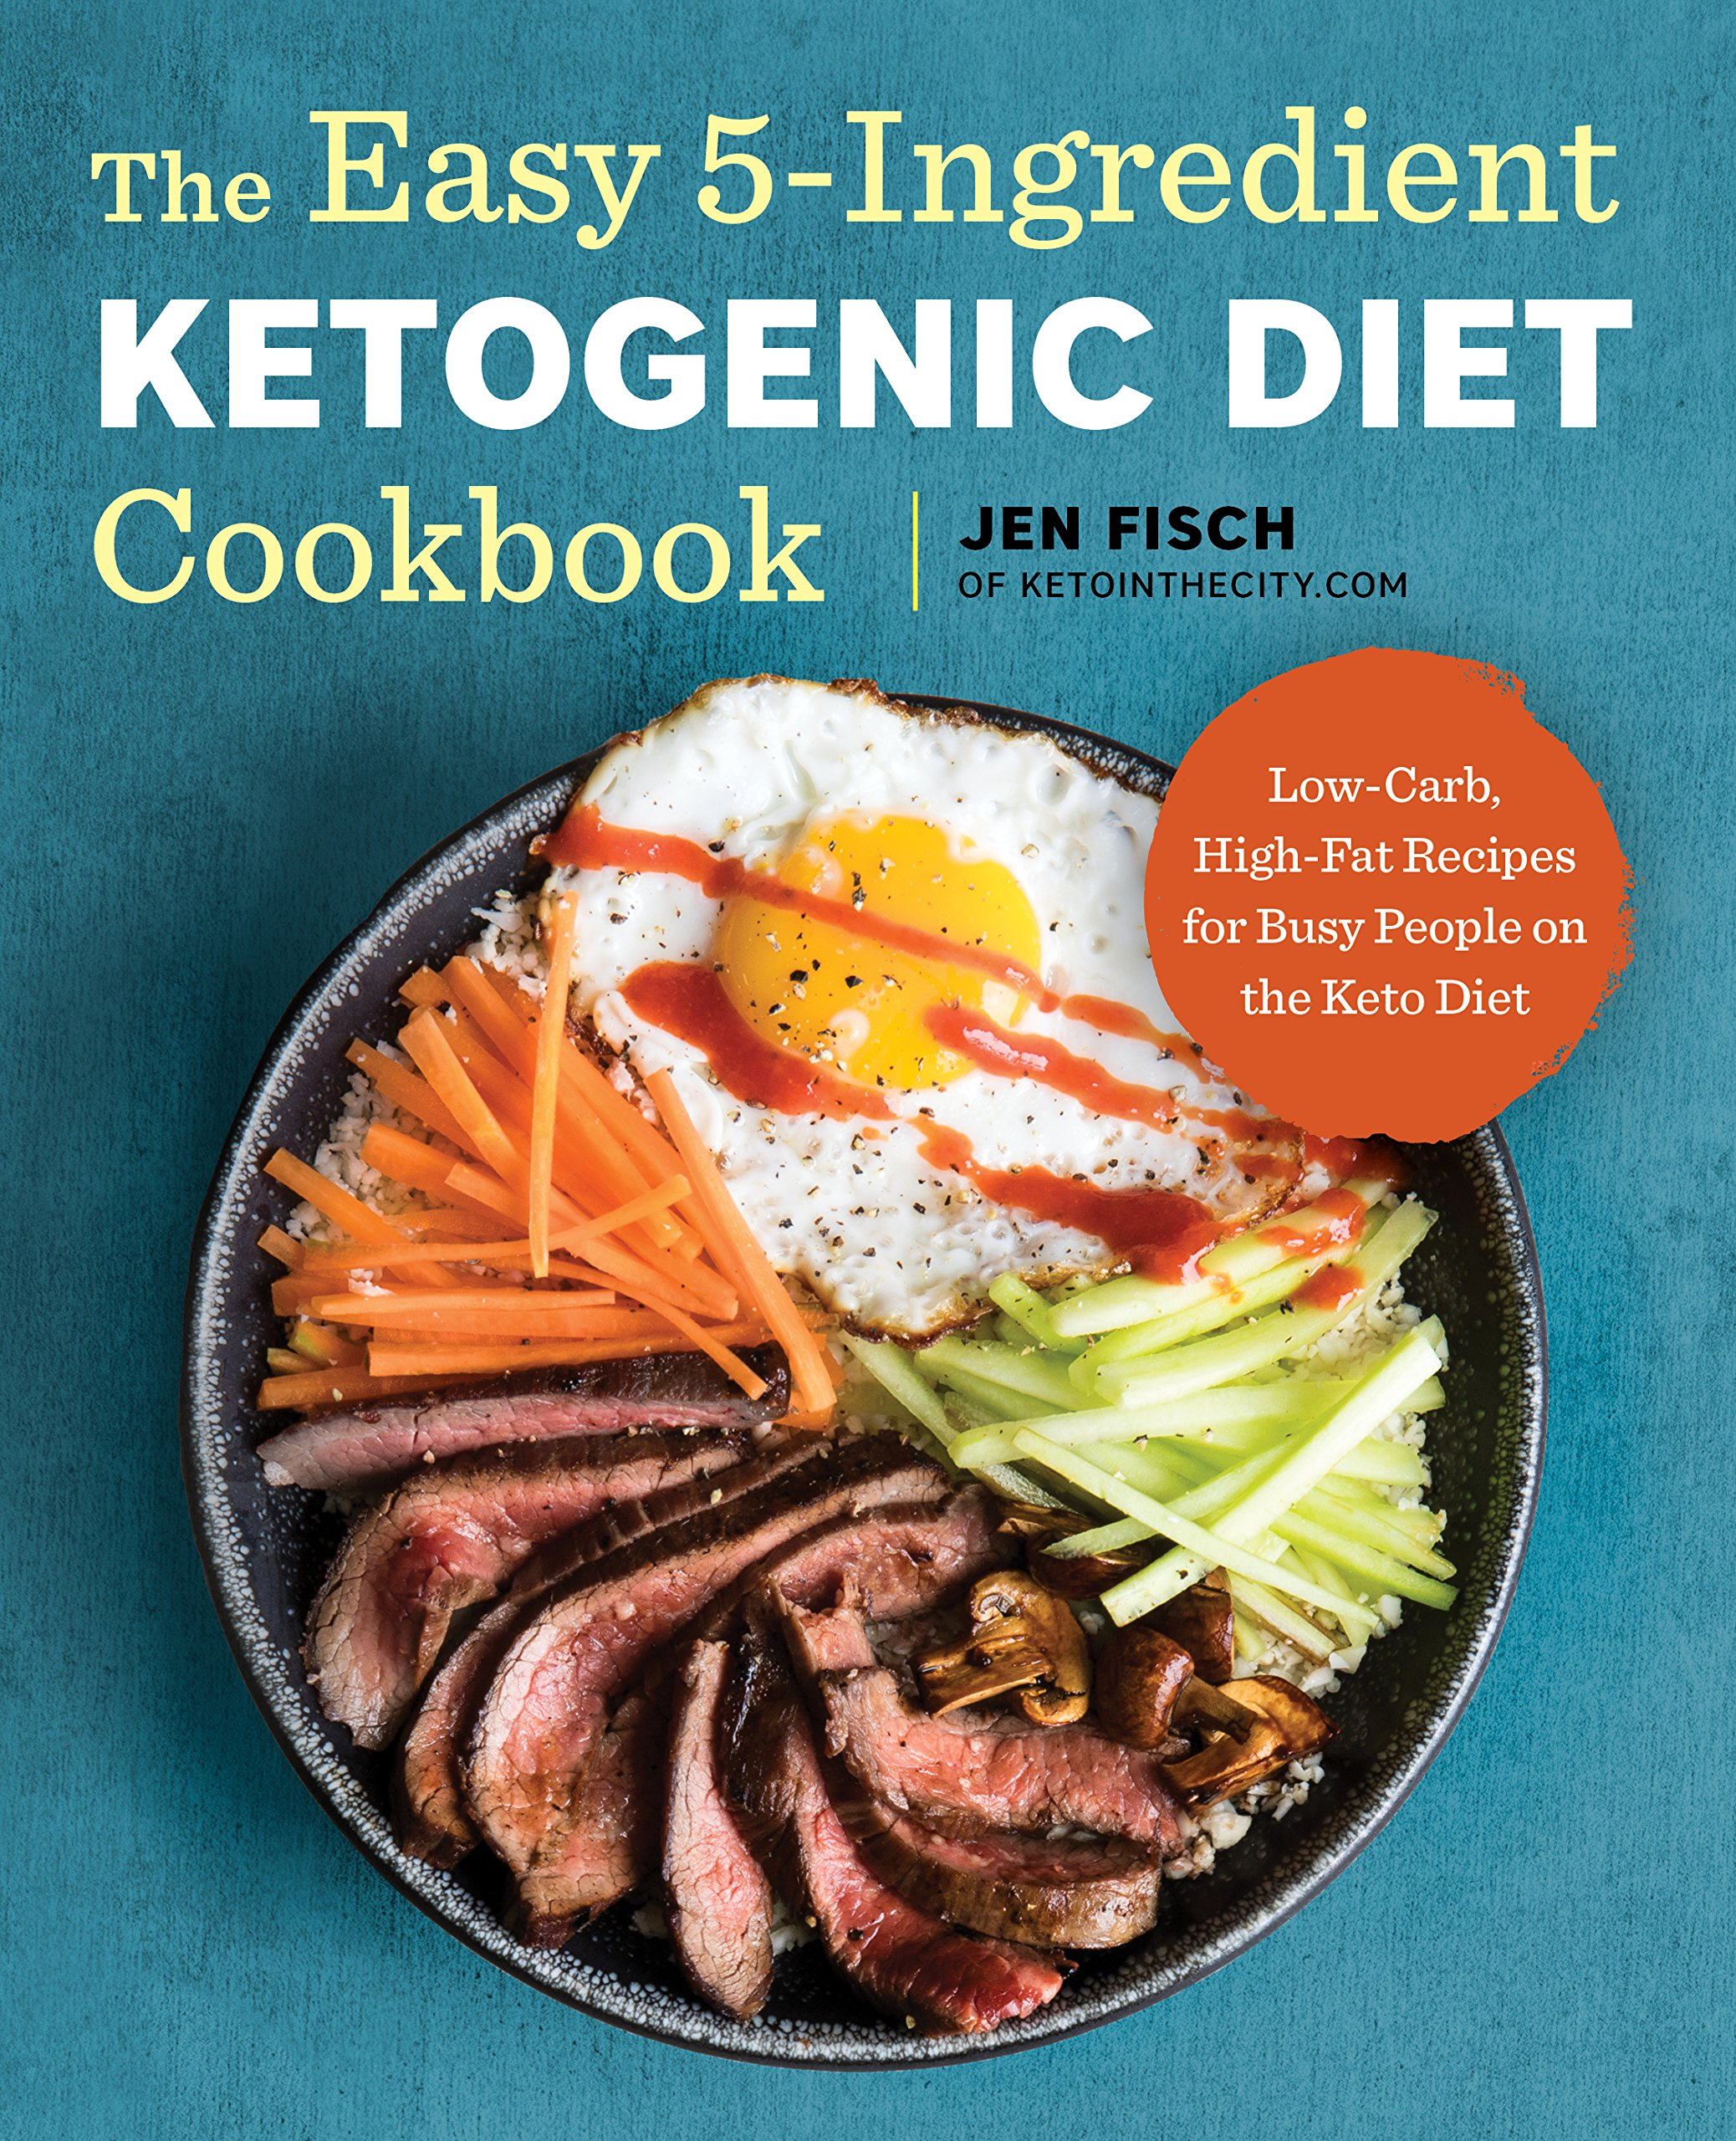 The easy 5 ingredient ketogenic diet cookbook low carb high fat the easy 5 ingredient ketogenic diet cookbook low carb high fat recipes for busy people on the keto diet jen fisch 9781939754448 amazon books forumfinder Image collections